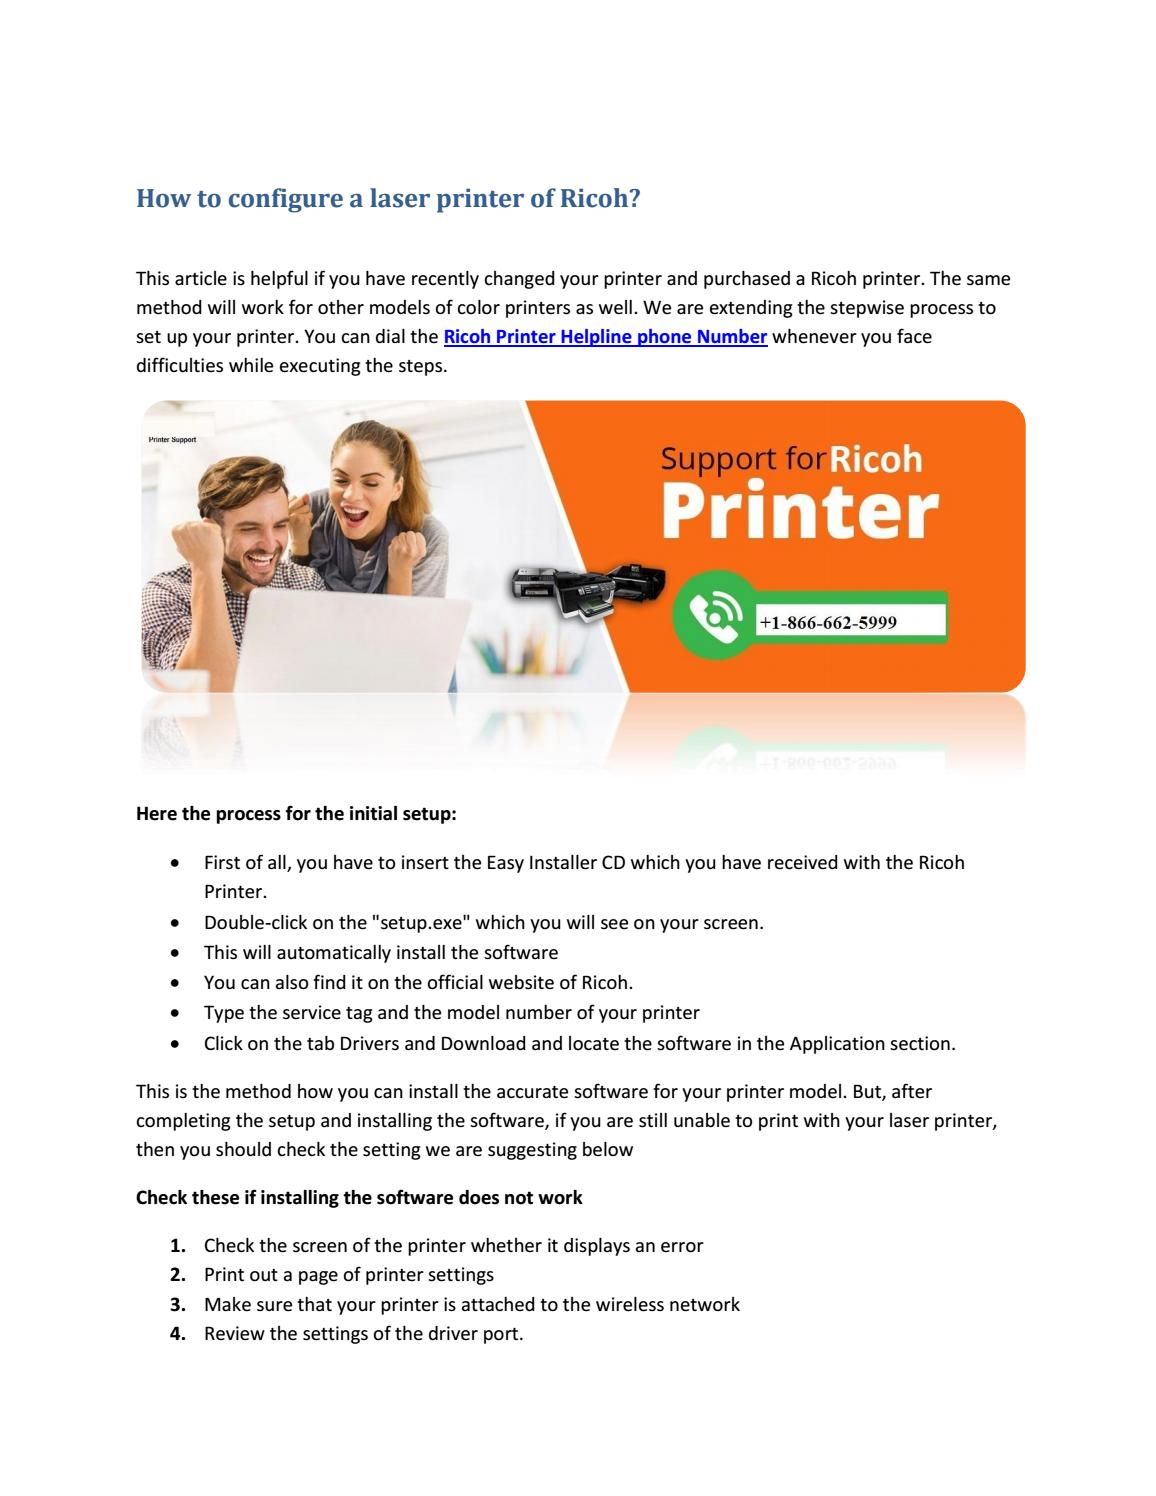 How to install the PostScripts drivers for Ricoh printer? by